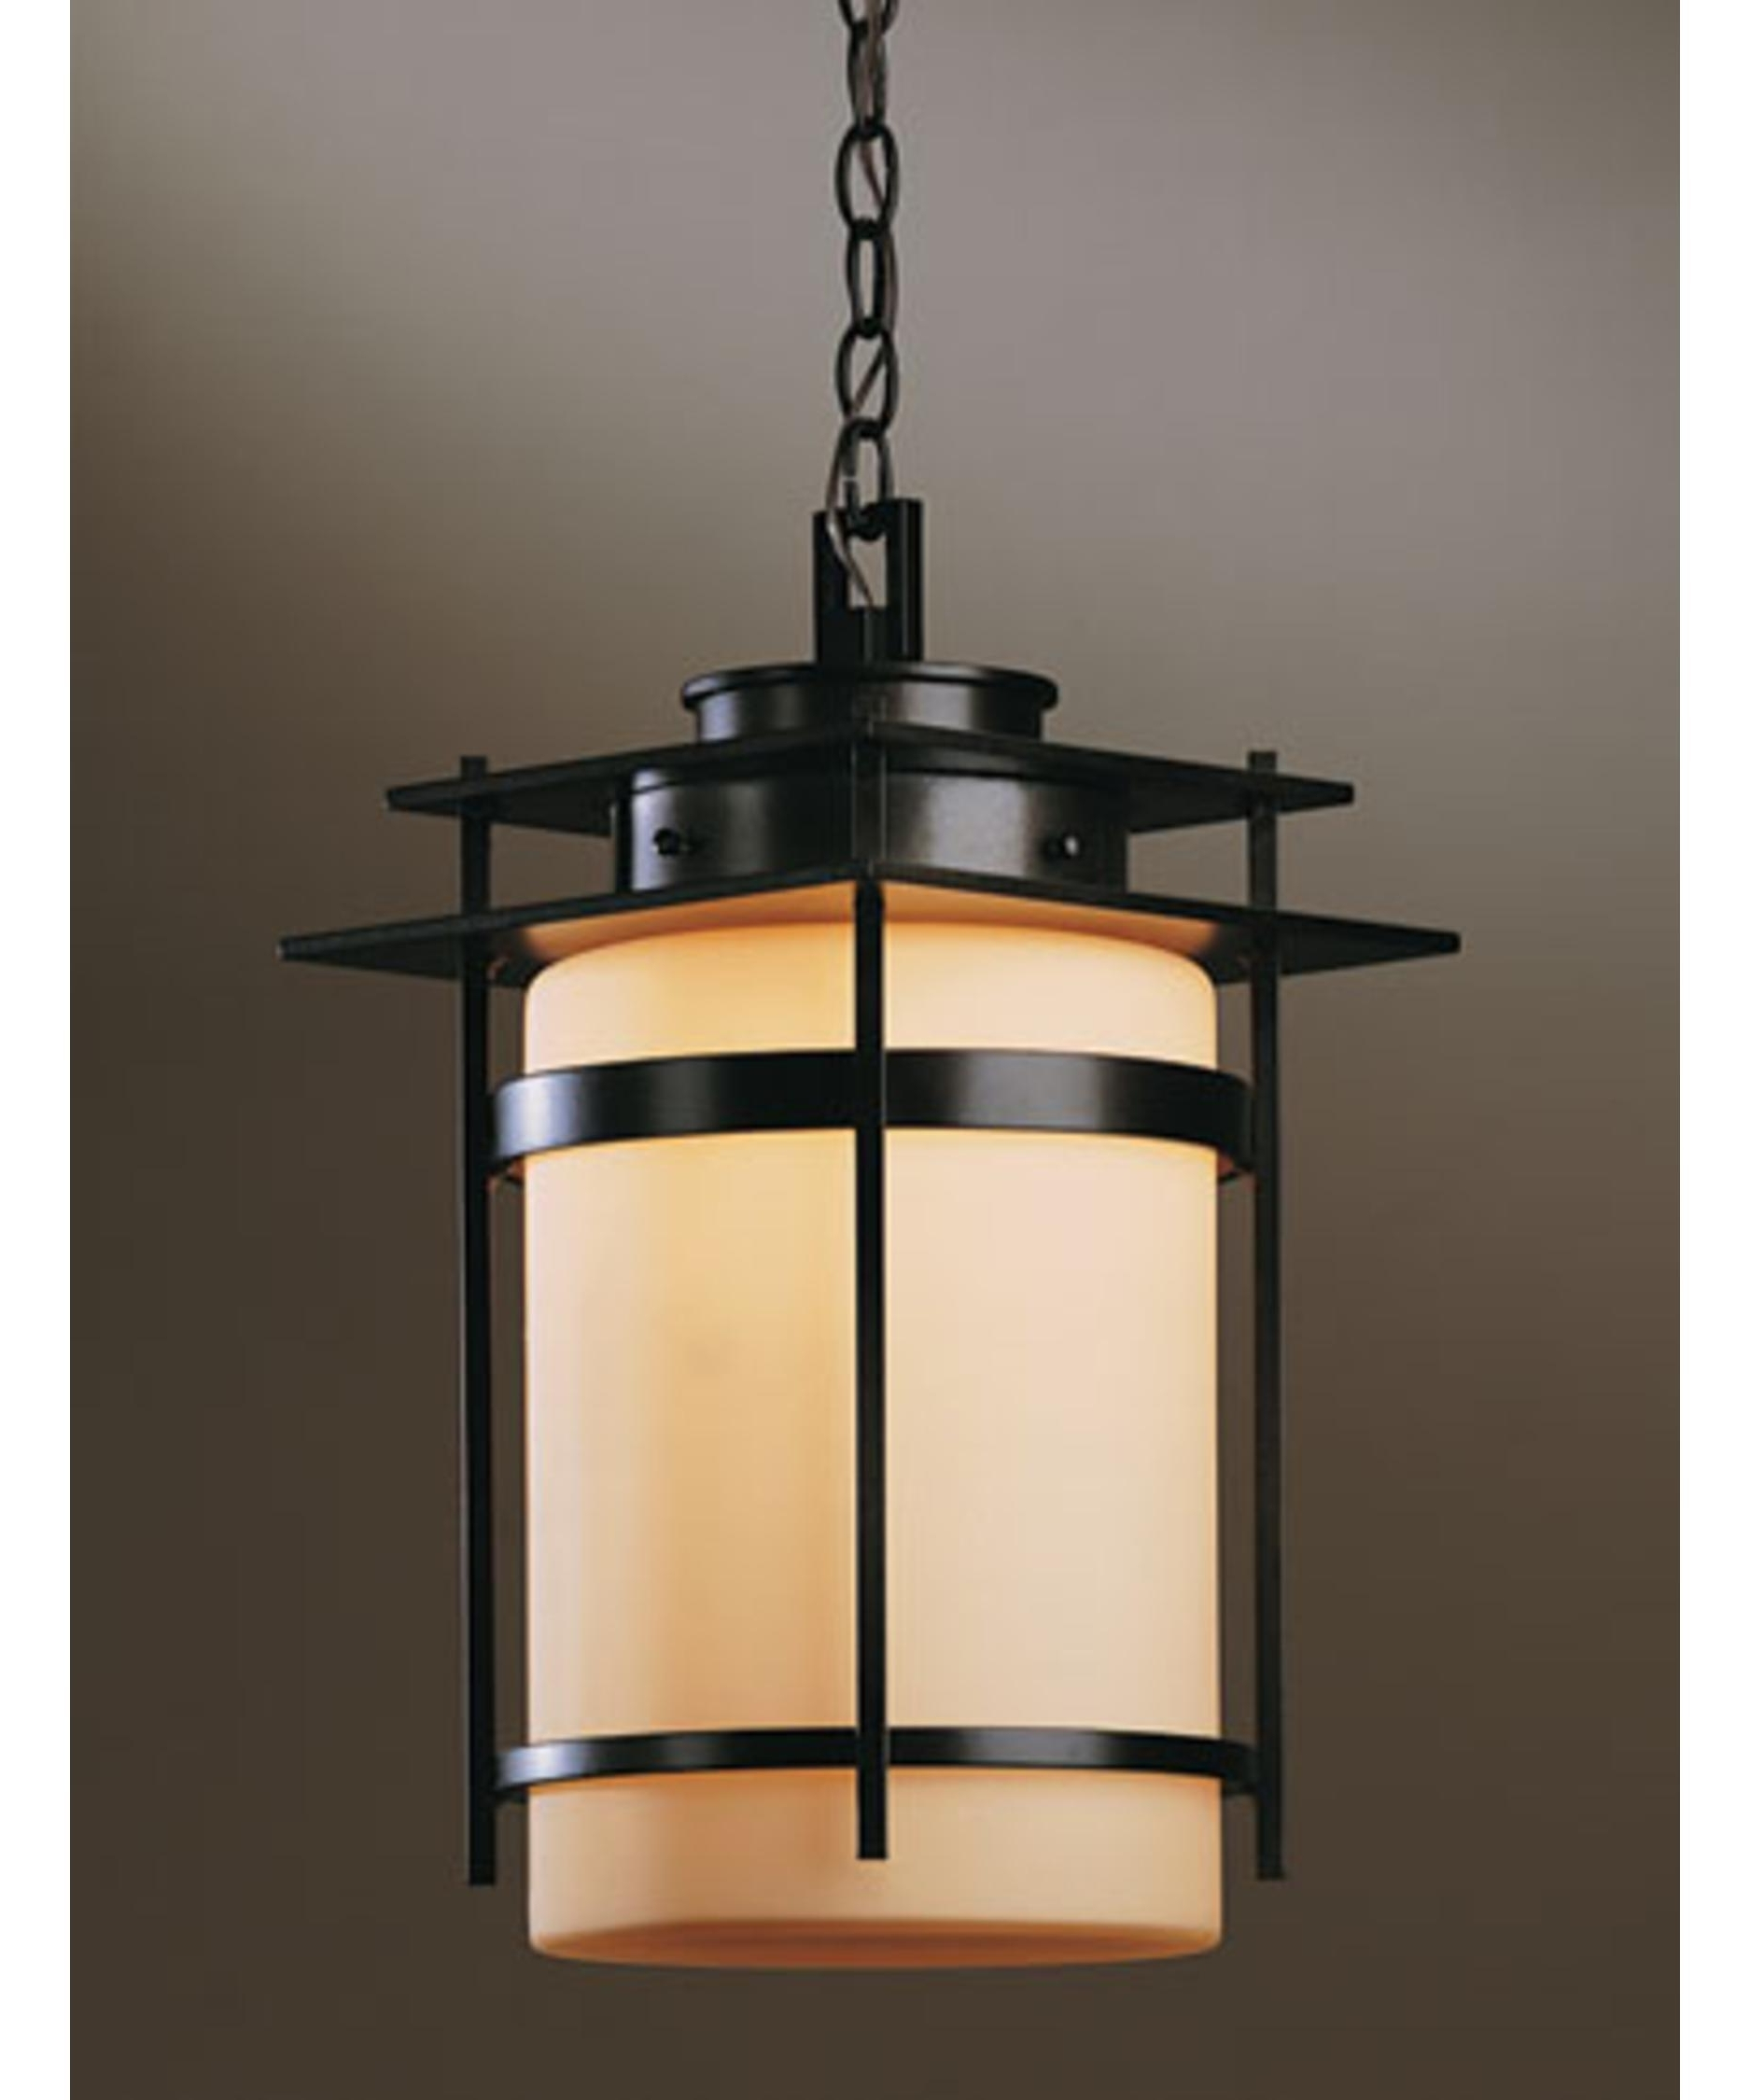 Famous Hanging Porch Light Oil Rubbed Bronze Outdoor Lights Houzz 12 Intended For Houzz Outdoor Hanging Lights (View 3 of 20)